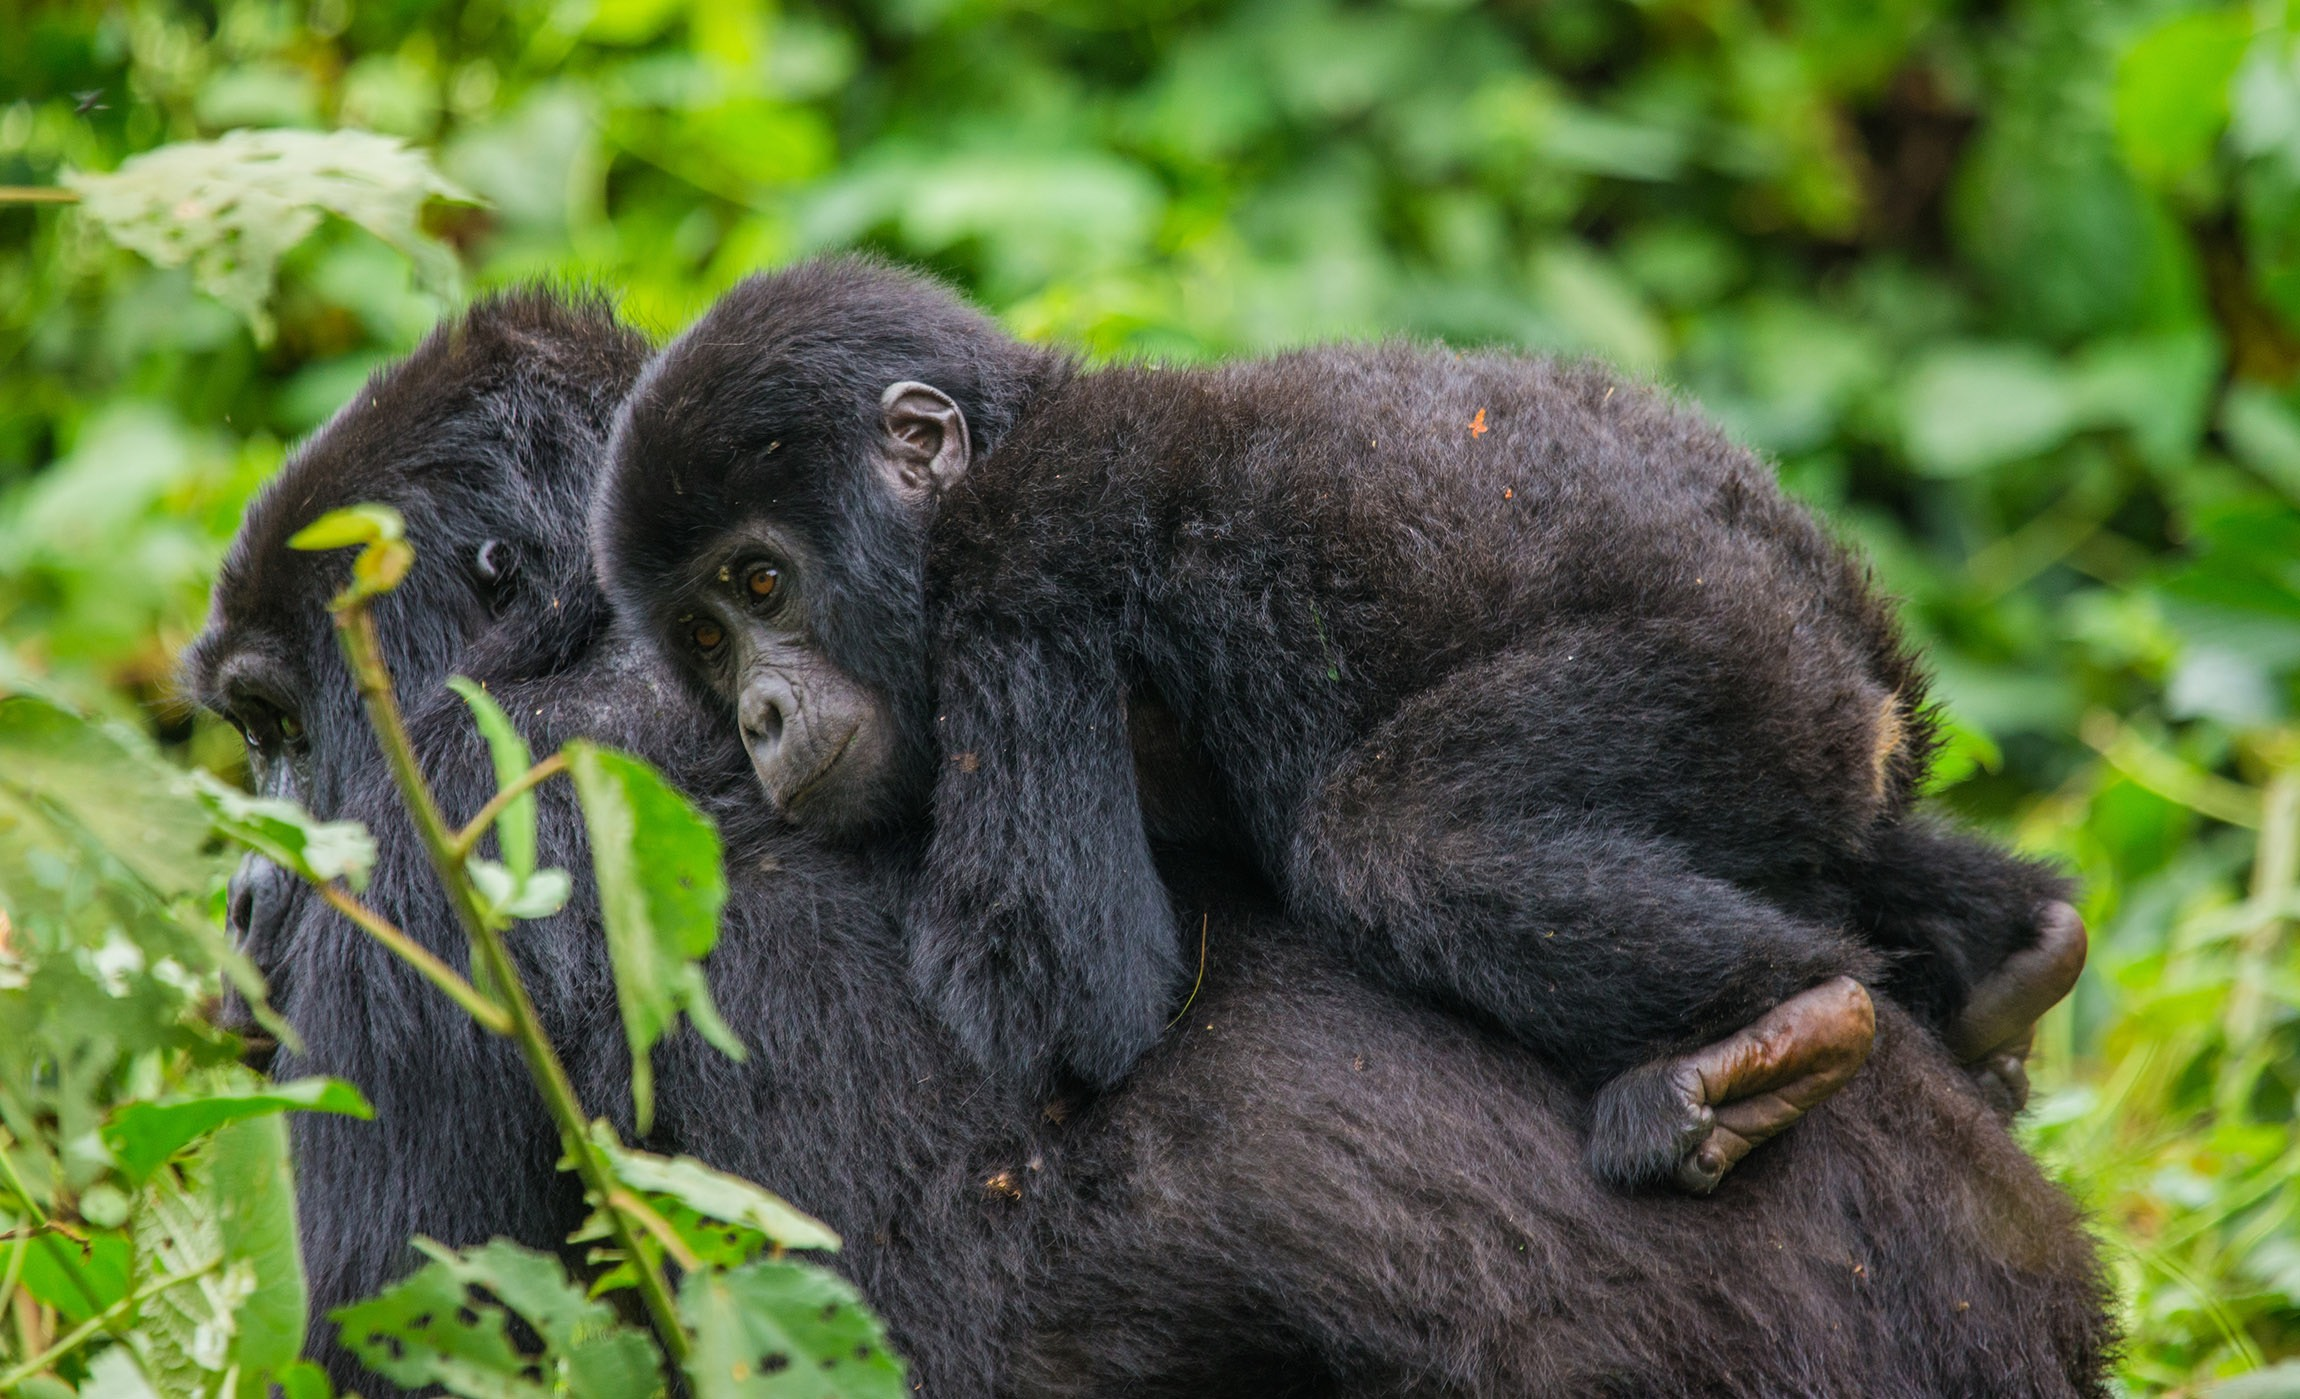 Mountain gorillas are very protective of their young